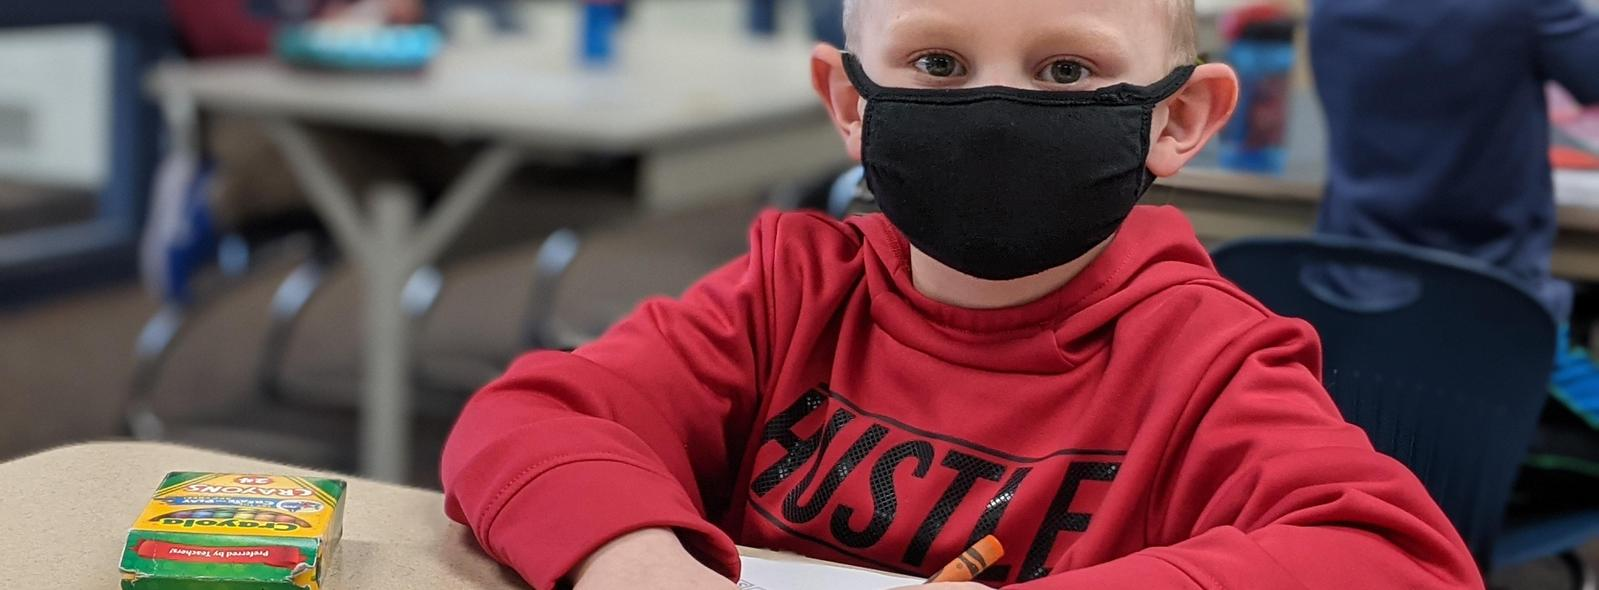 boy with mask on